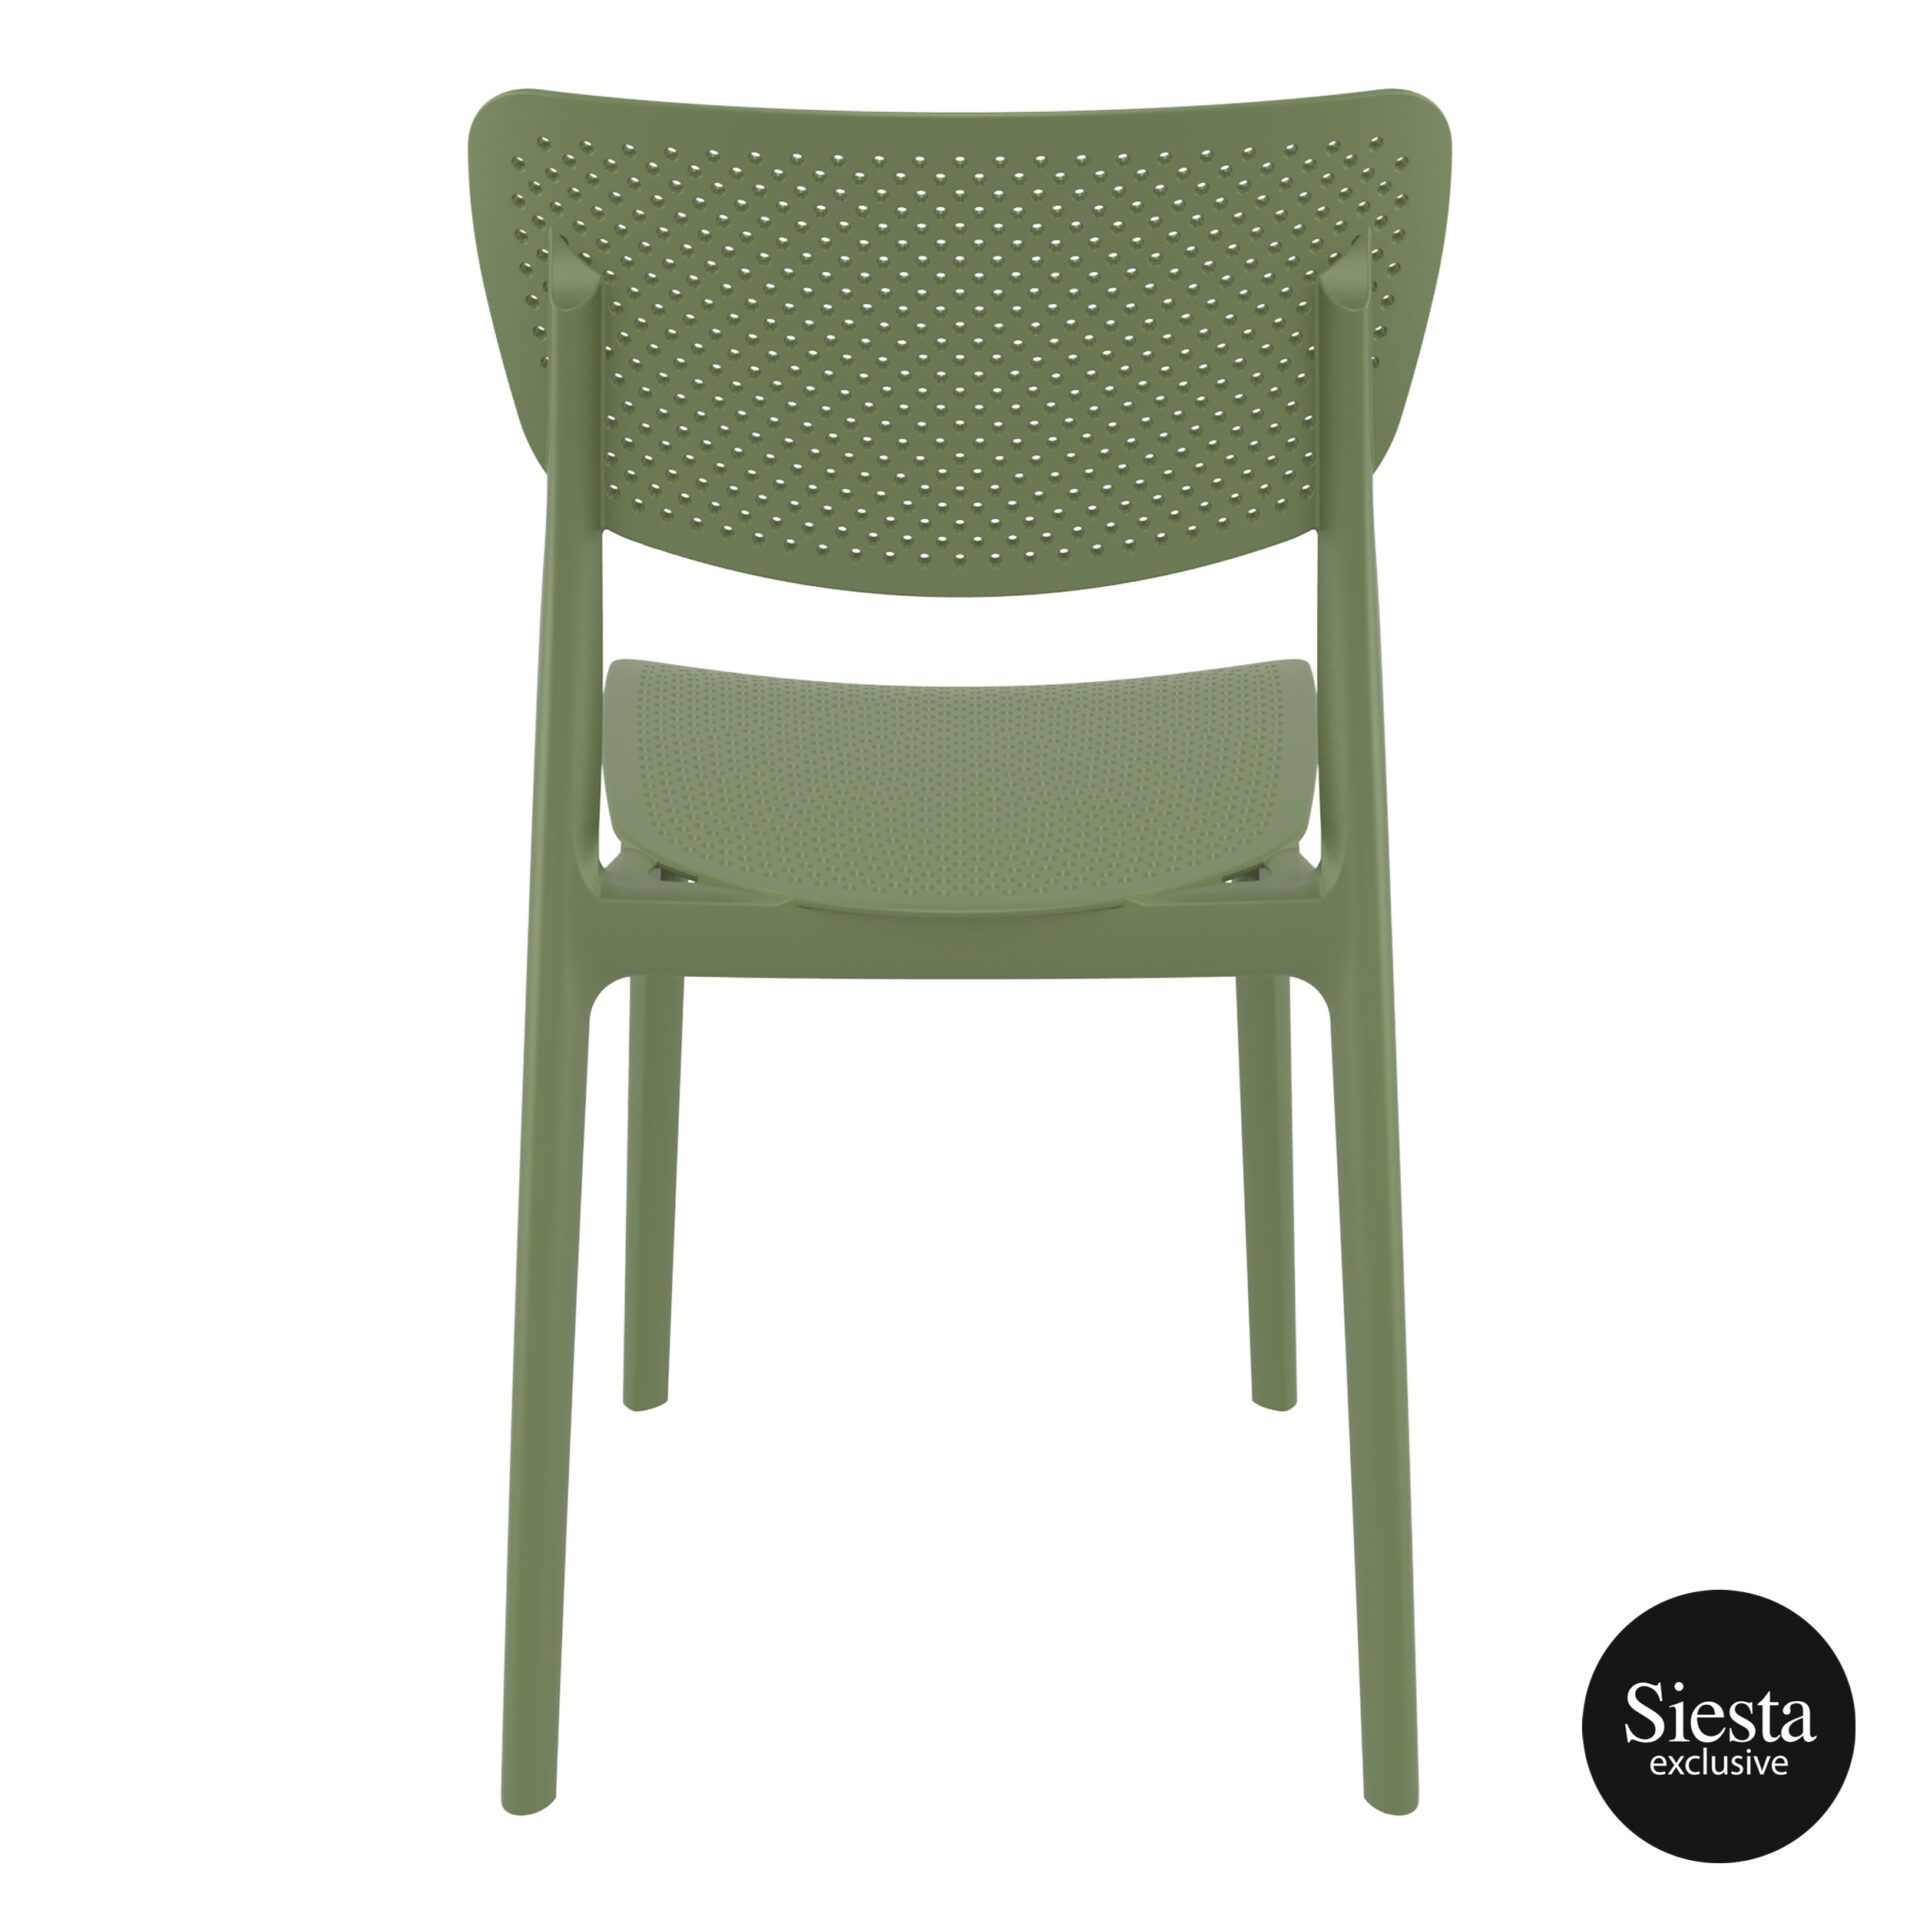 polypropylene hospitality seating lucy chair olive green back 1